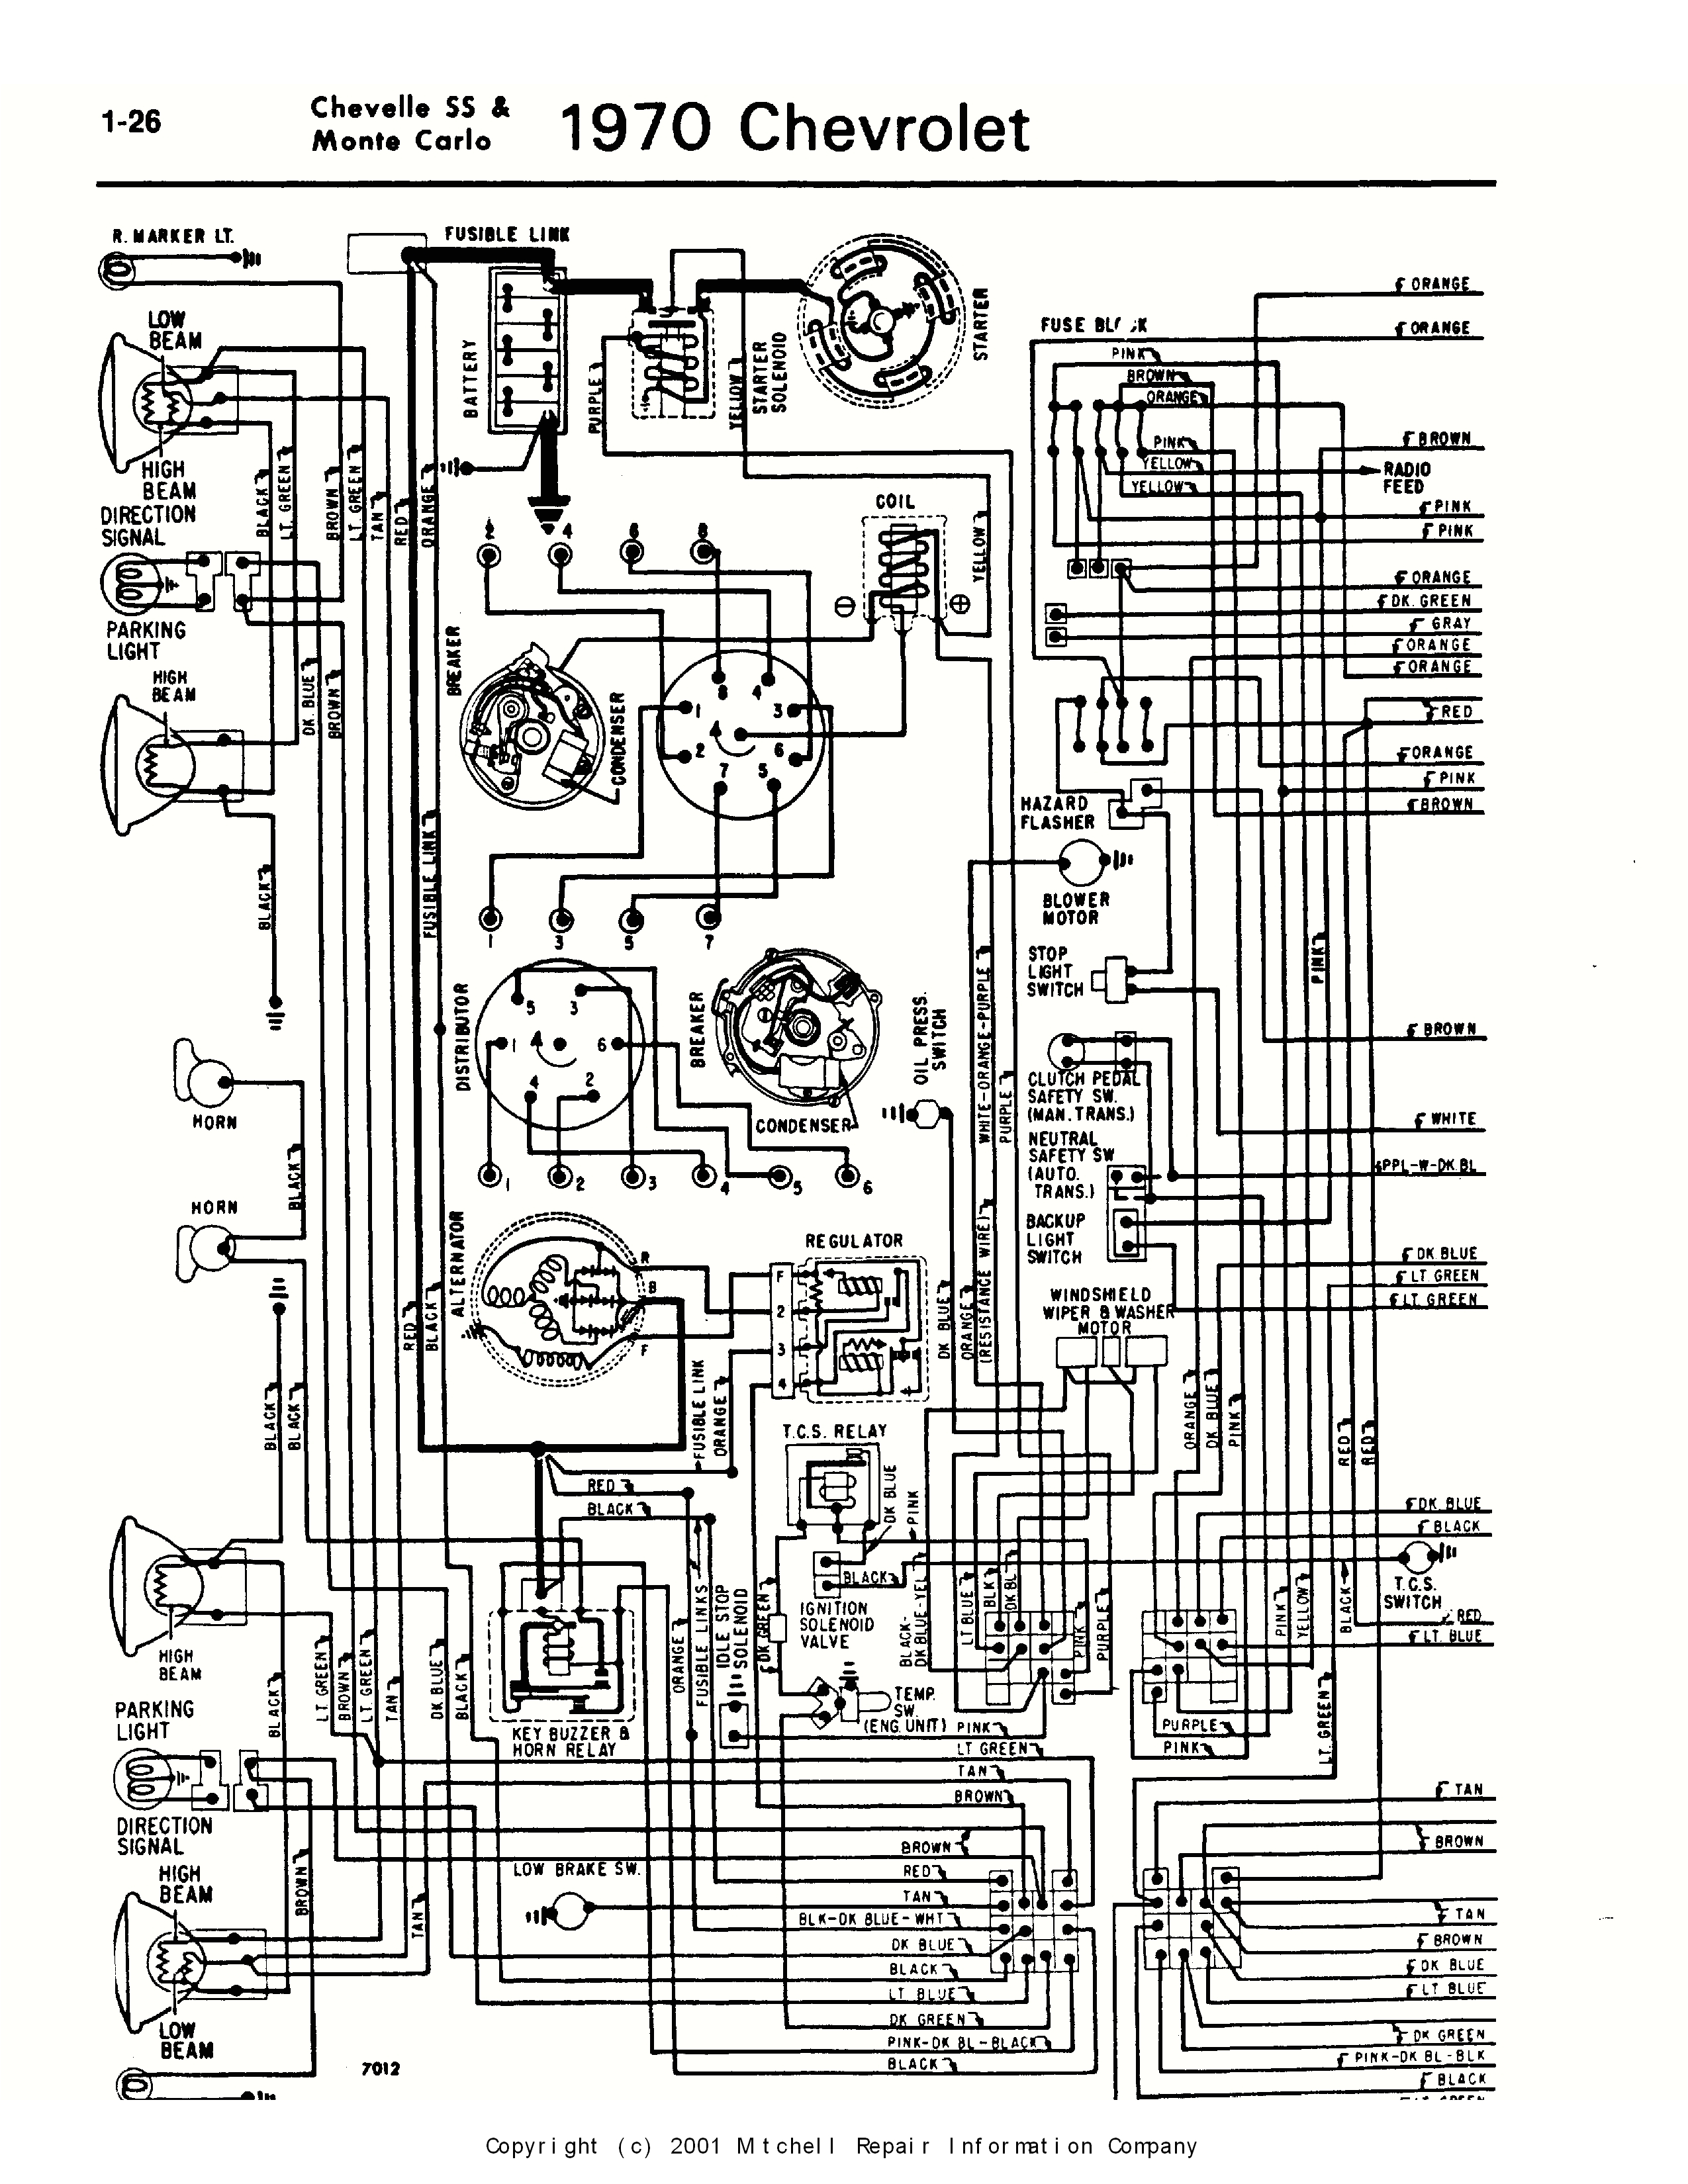 69 Chevelle Wiring Diagram 1970 Chevelle Wiring Harness Diagram Wiring Diagram Repair Guides